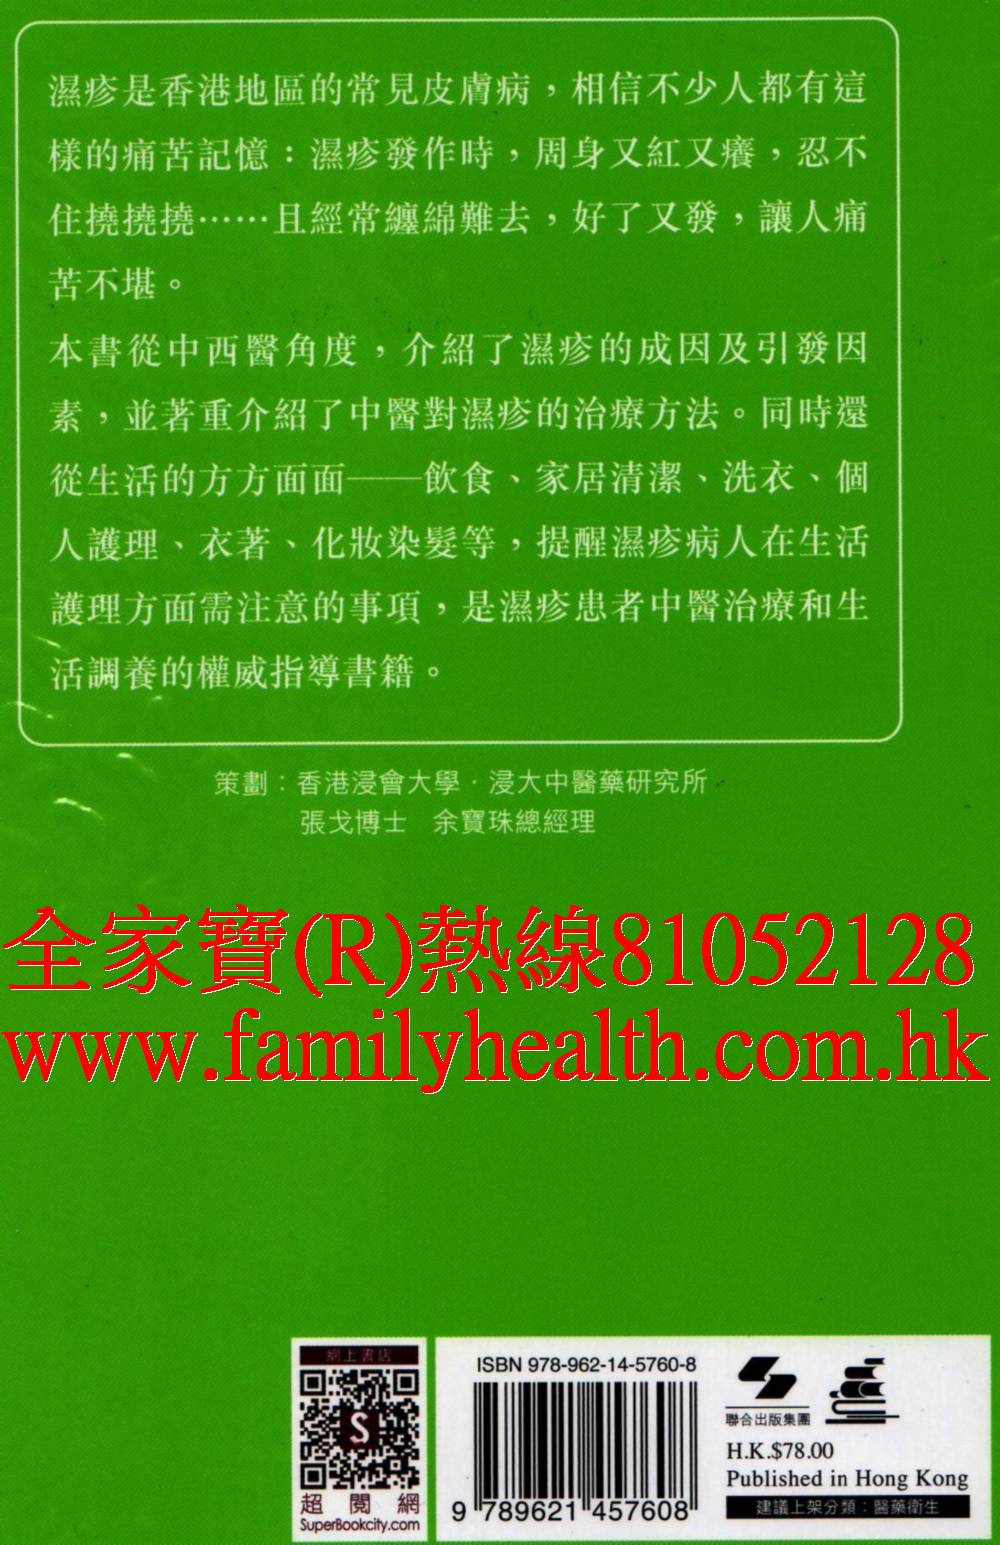 http://www.familyhealth.com.hk/files/full/922_1.jpg